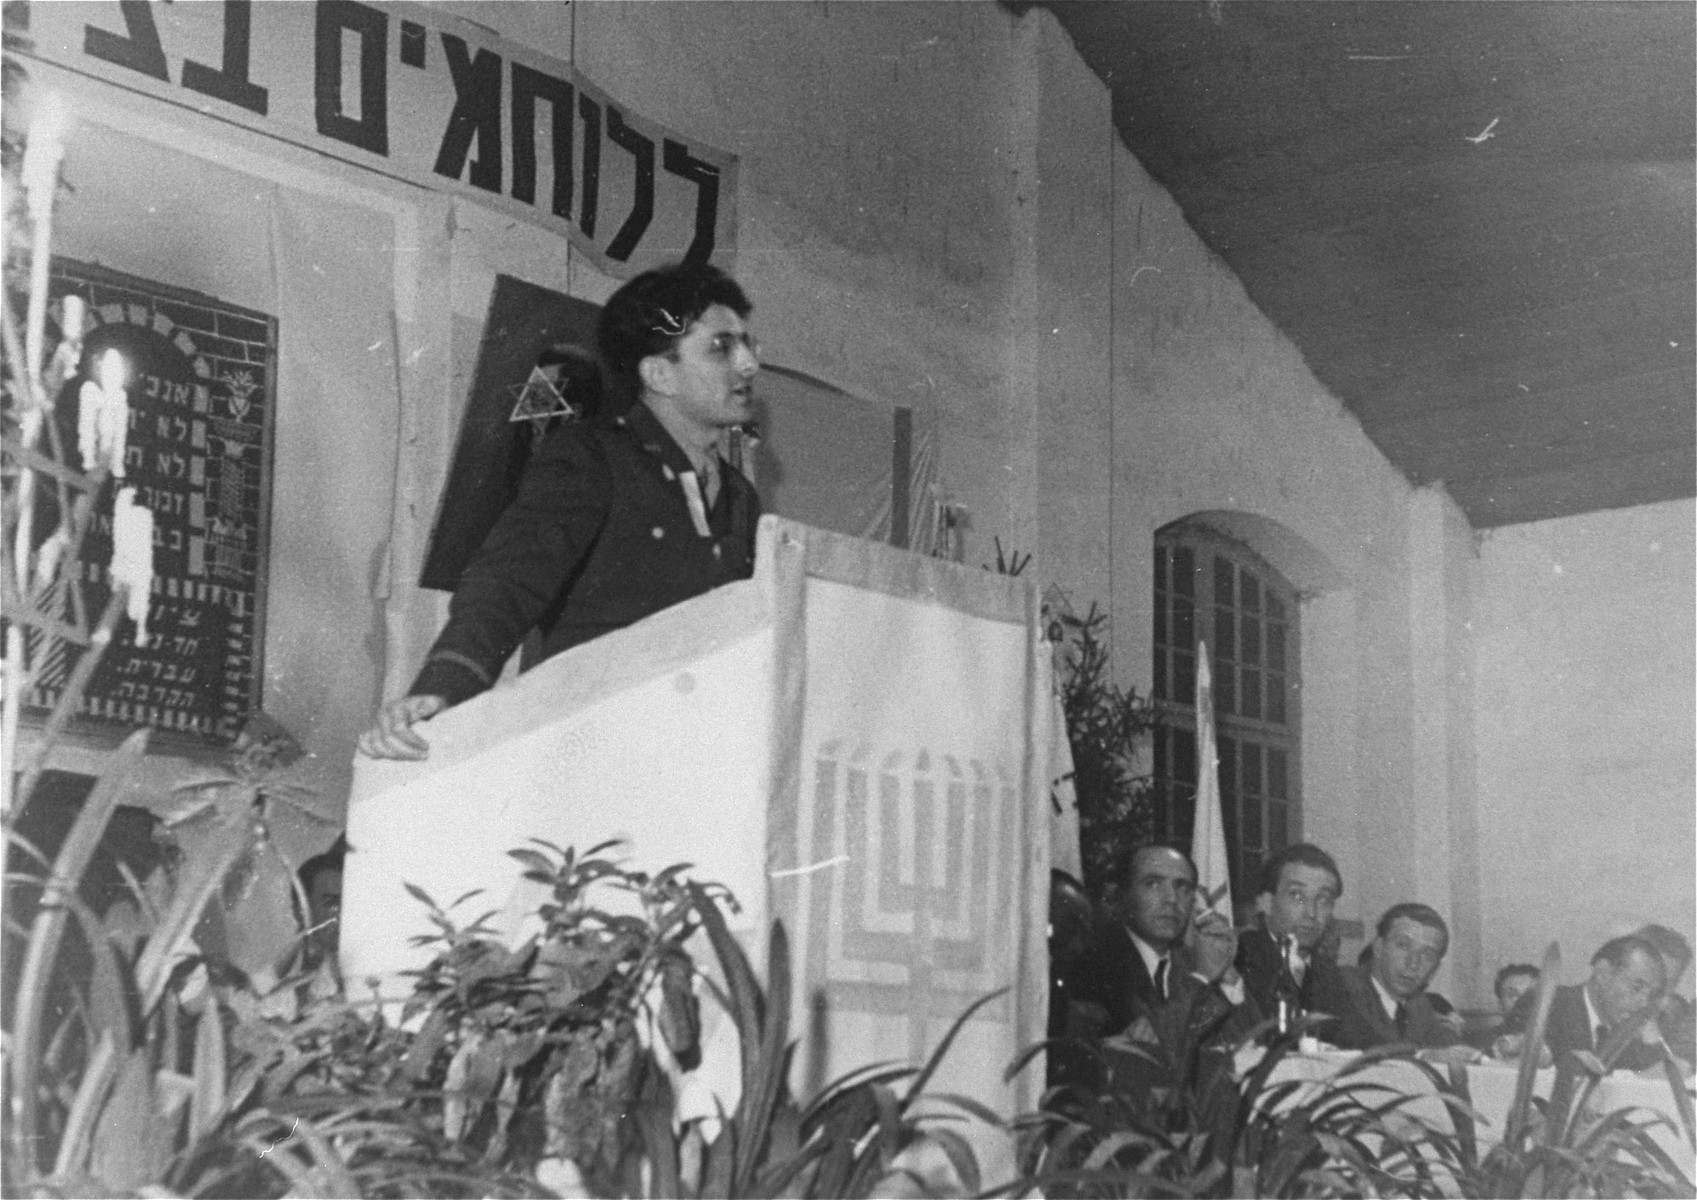 U.S. army chaplain Rabbi Abraham Klausner speaks at the first post-war Zionist conference in Munich.